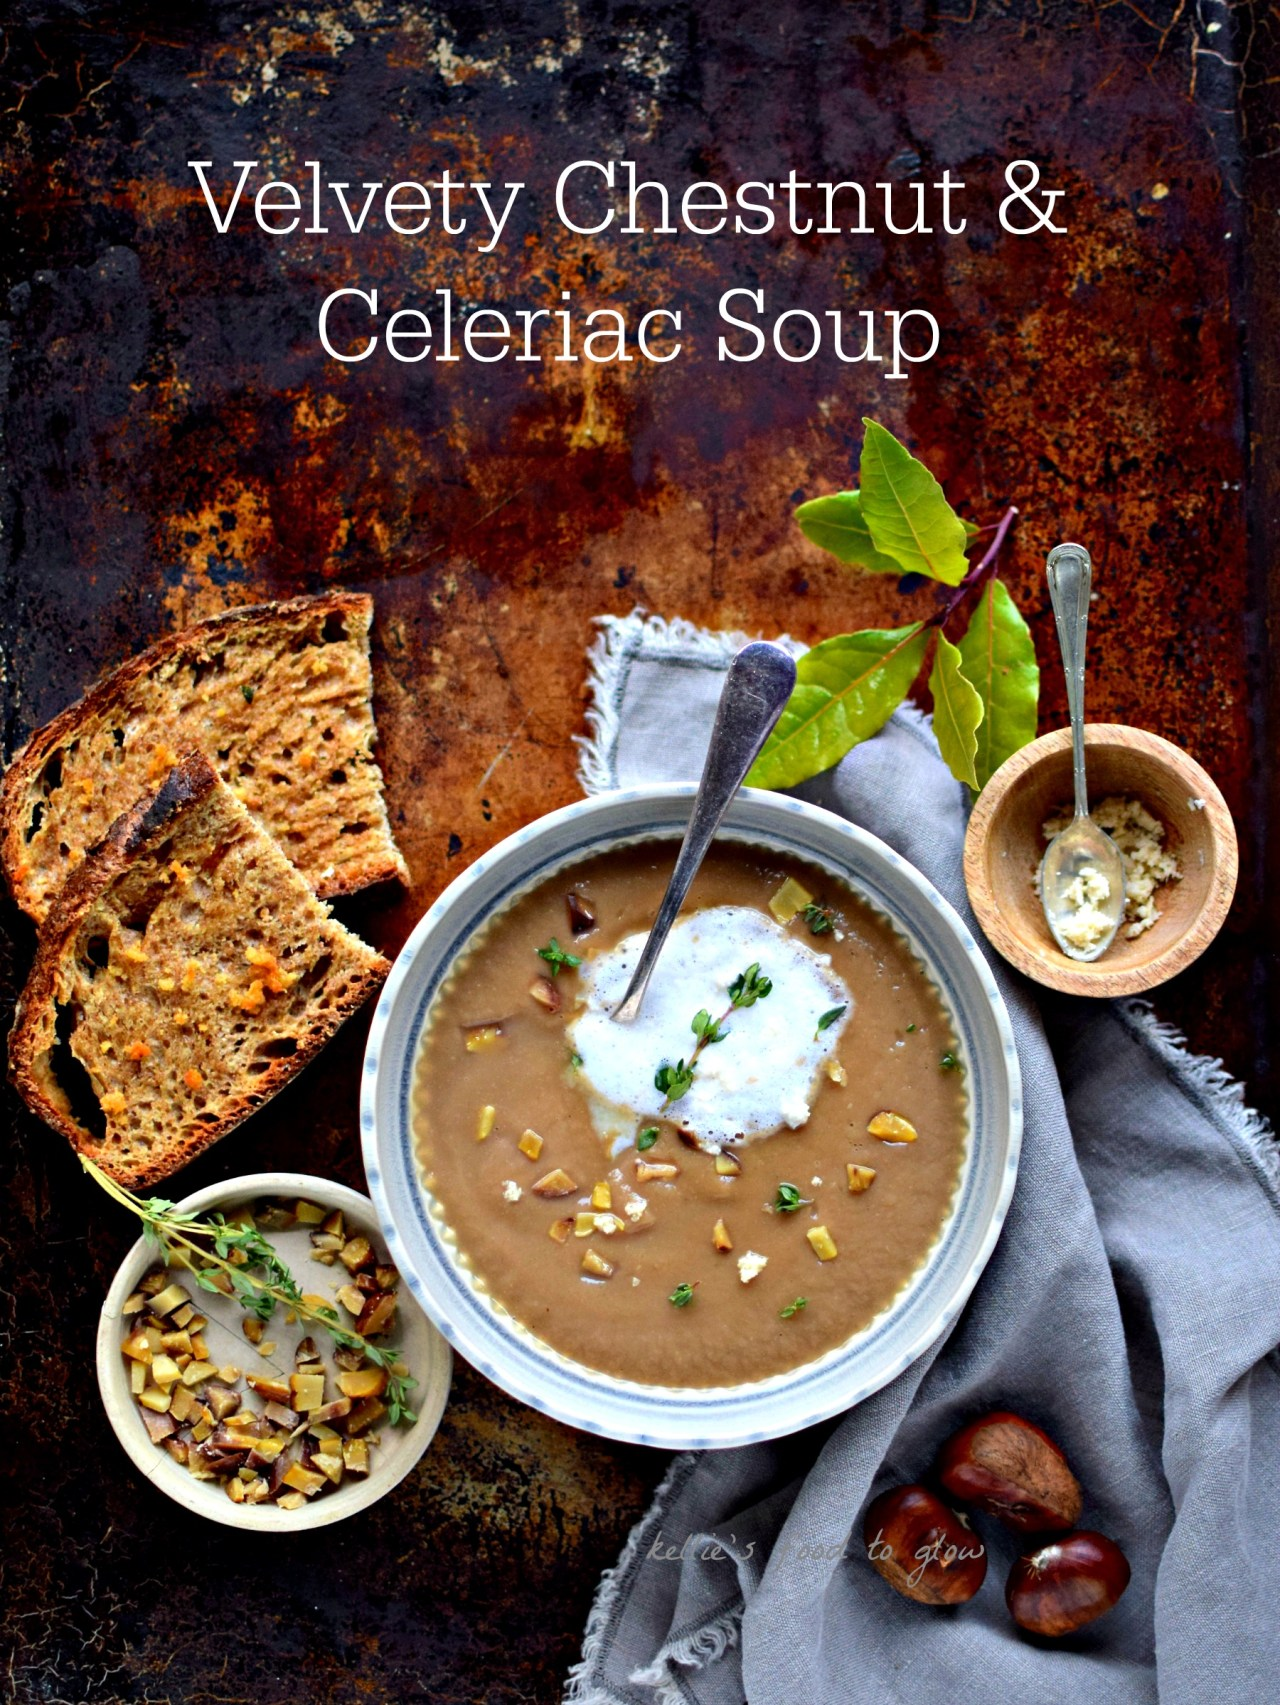 Chestnuts and celeriac bring out the best in each other in this luxurious, velvety smooth low calorie winter soup. Add an easy foam, plus horseradish-truffle toast to make it fancy - even on a wet weekday afternoon. The soup is gluten-free and vegan.